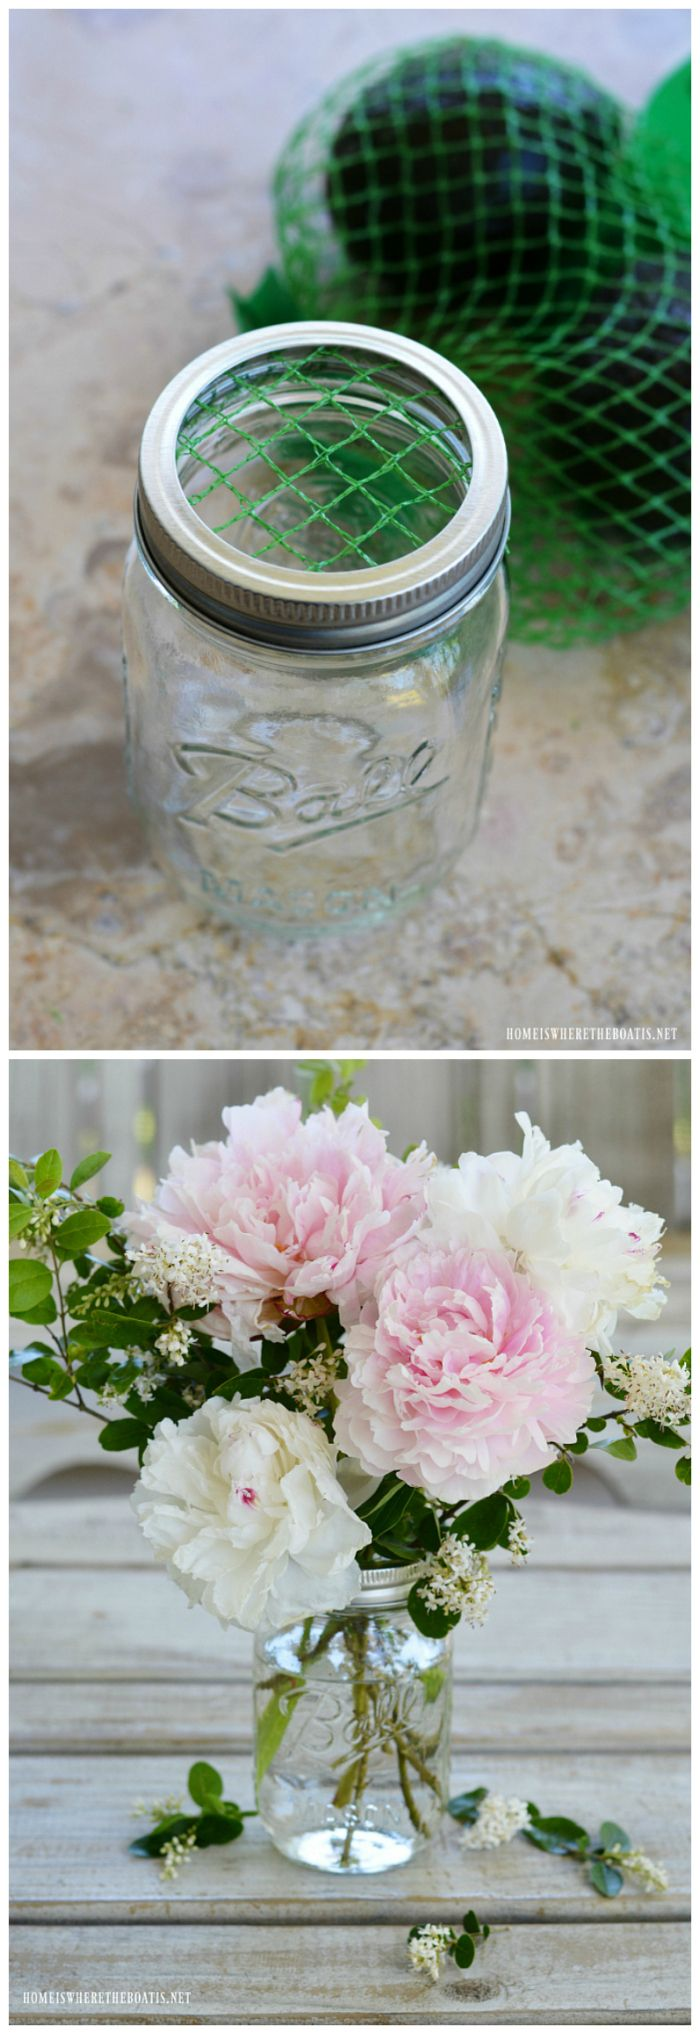 Garden Bouquet Tips and Flower Arranging Hack using something you usually throw away! | homeiswheretheboatis.net